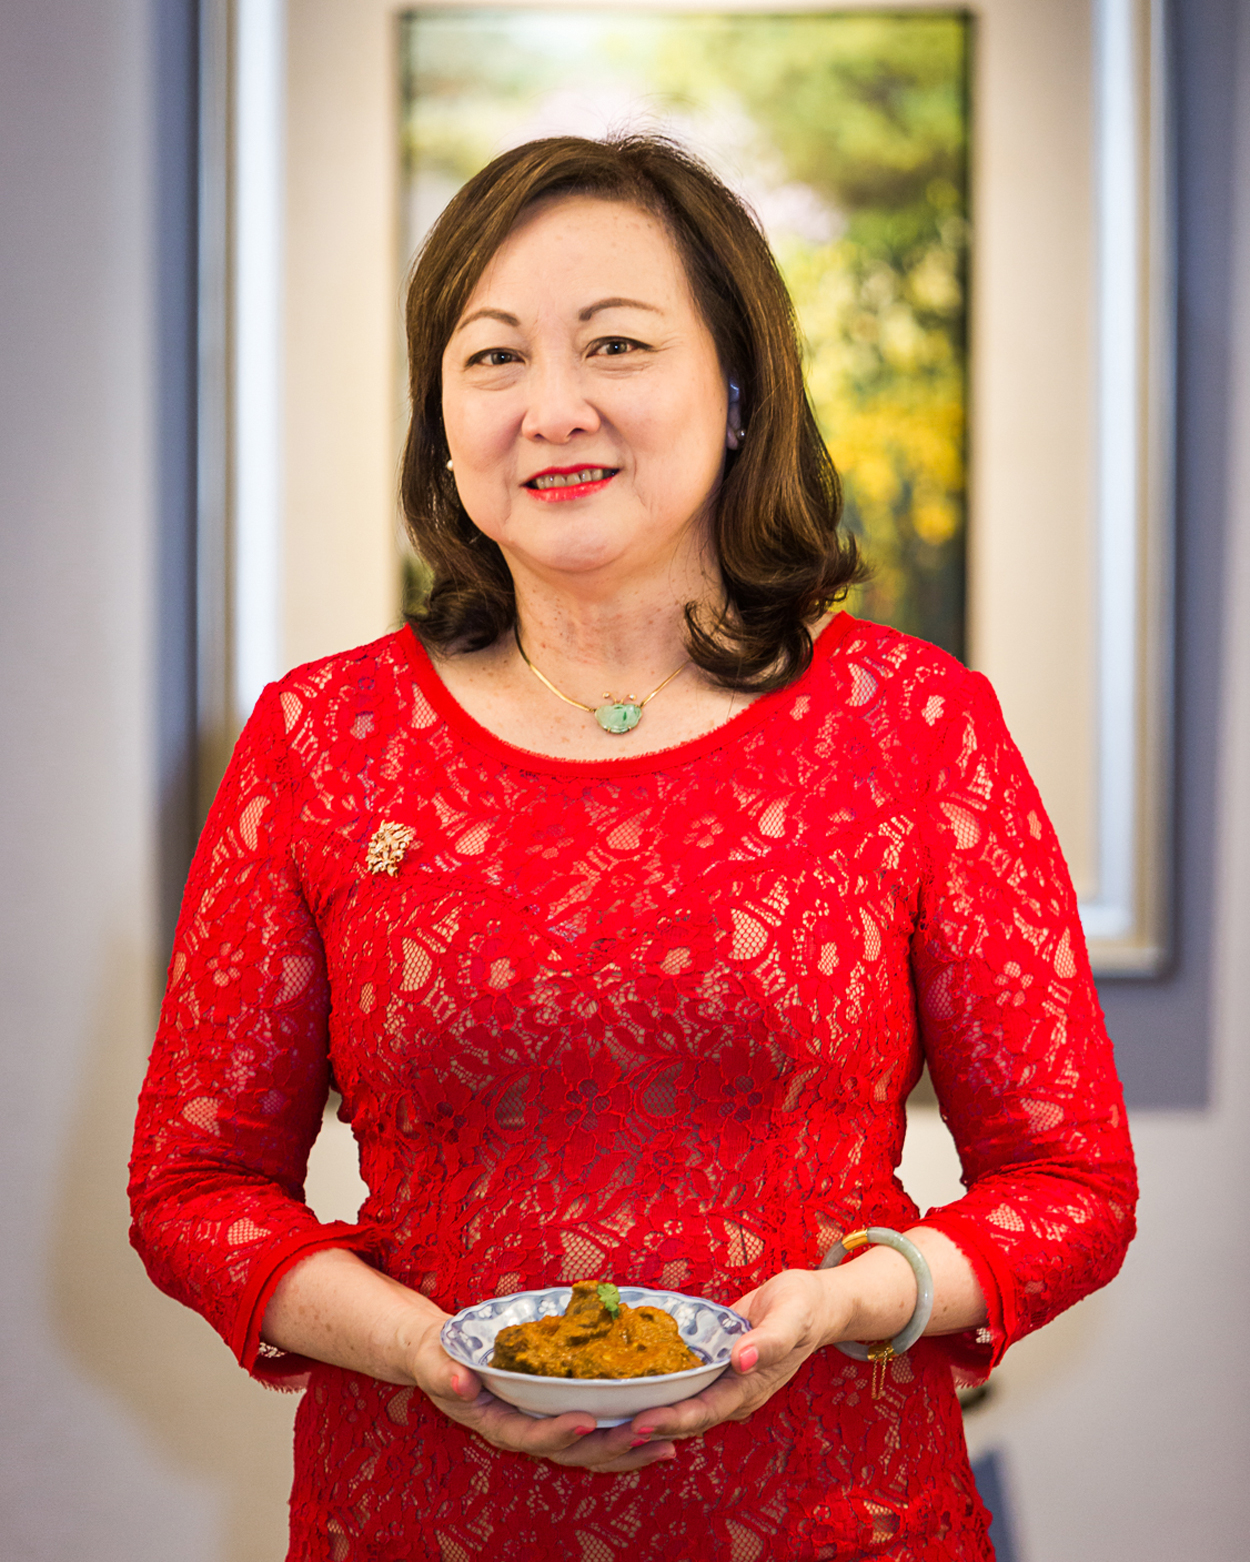 Lynnette Seah, owner and chef of Lynnette's Kitchen